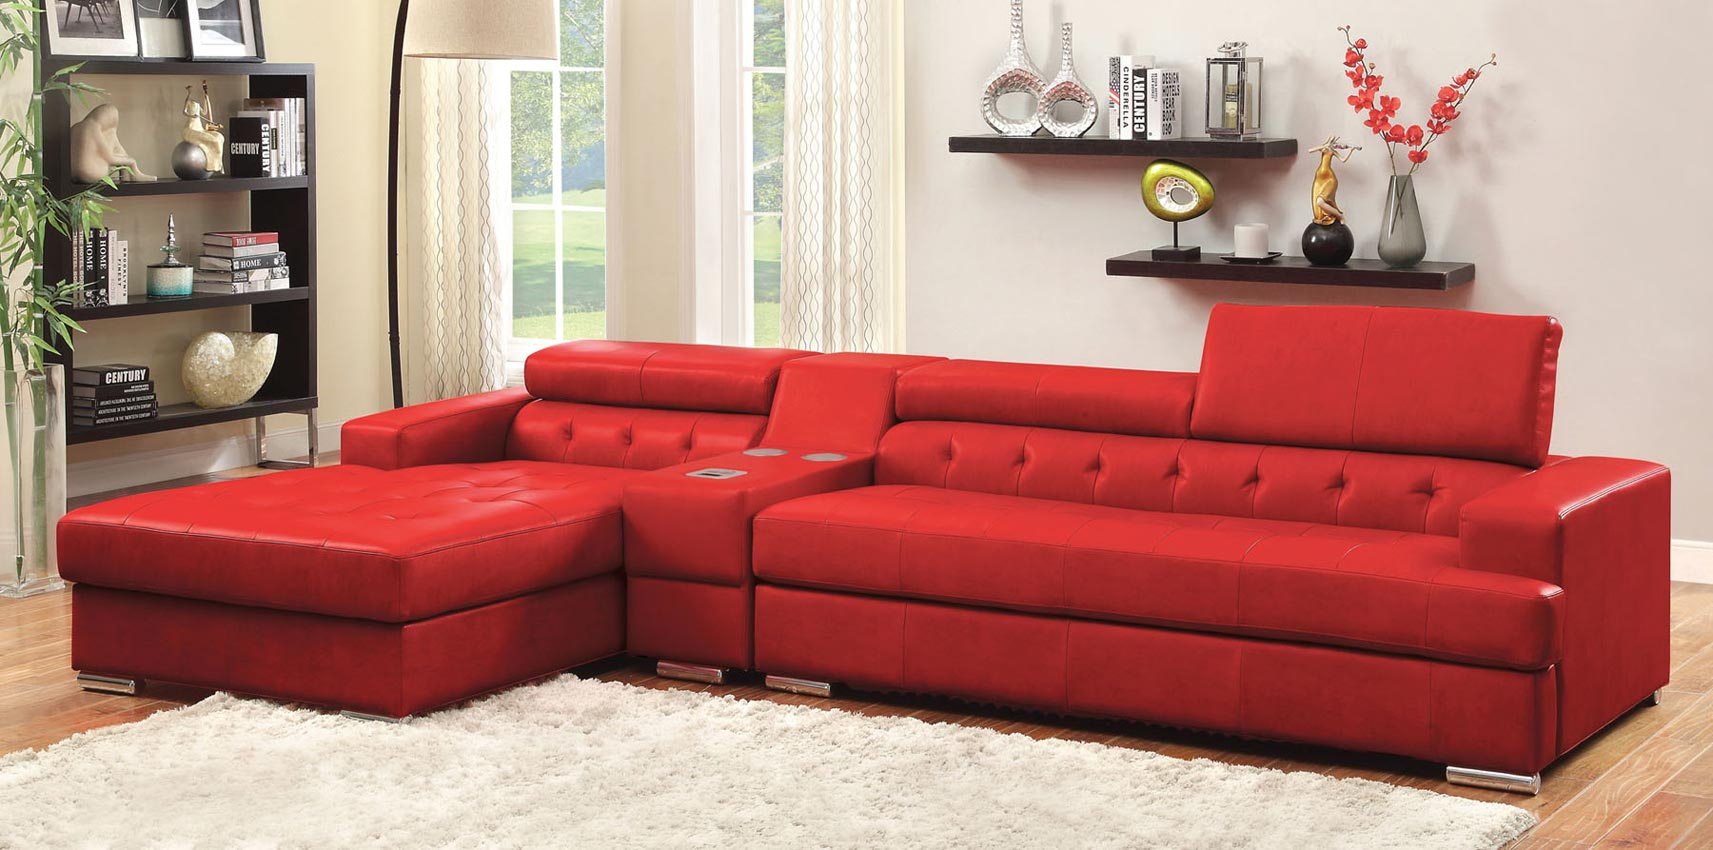 3 Pcs Red Leather Sofa Set With Console Intended For Red Sofas (View 4 of 15)